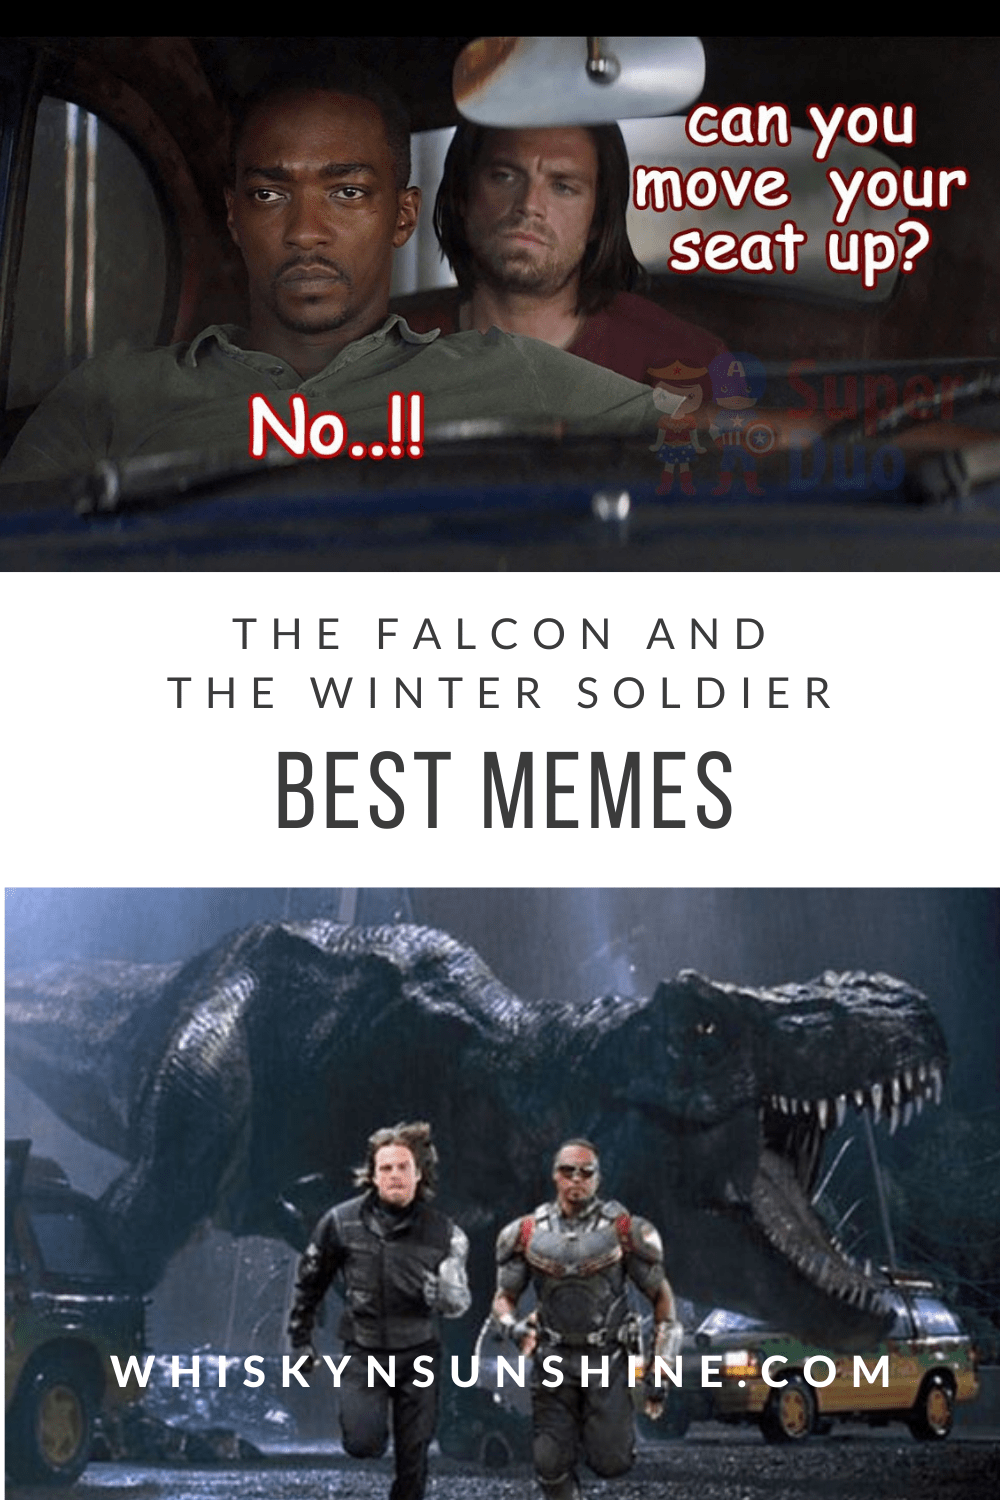 the falcon and the winter soldier best memes